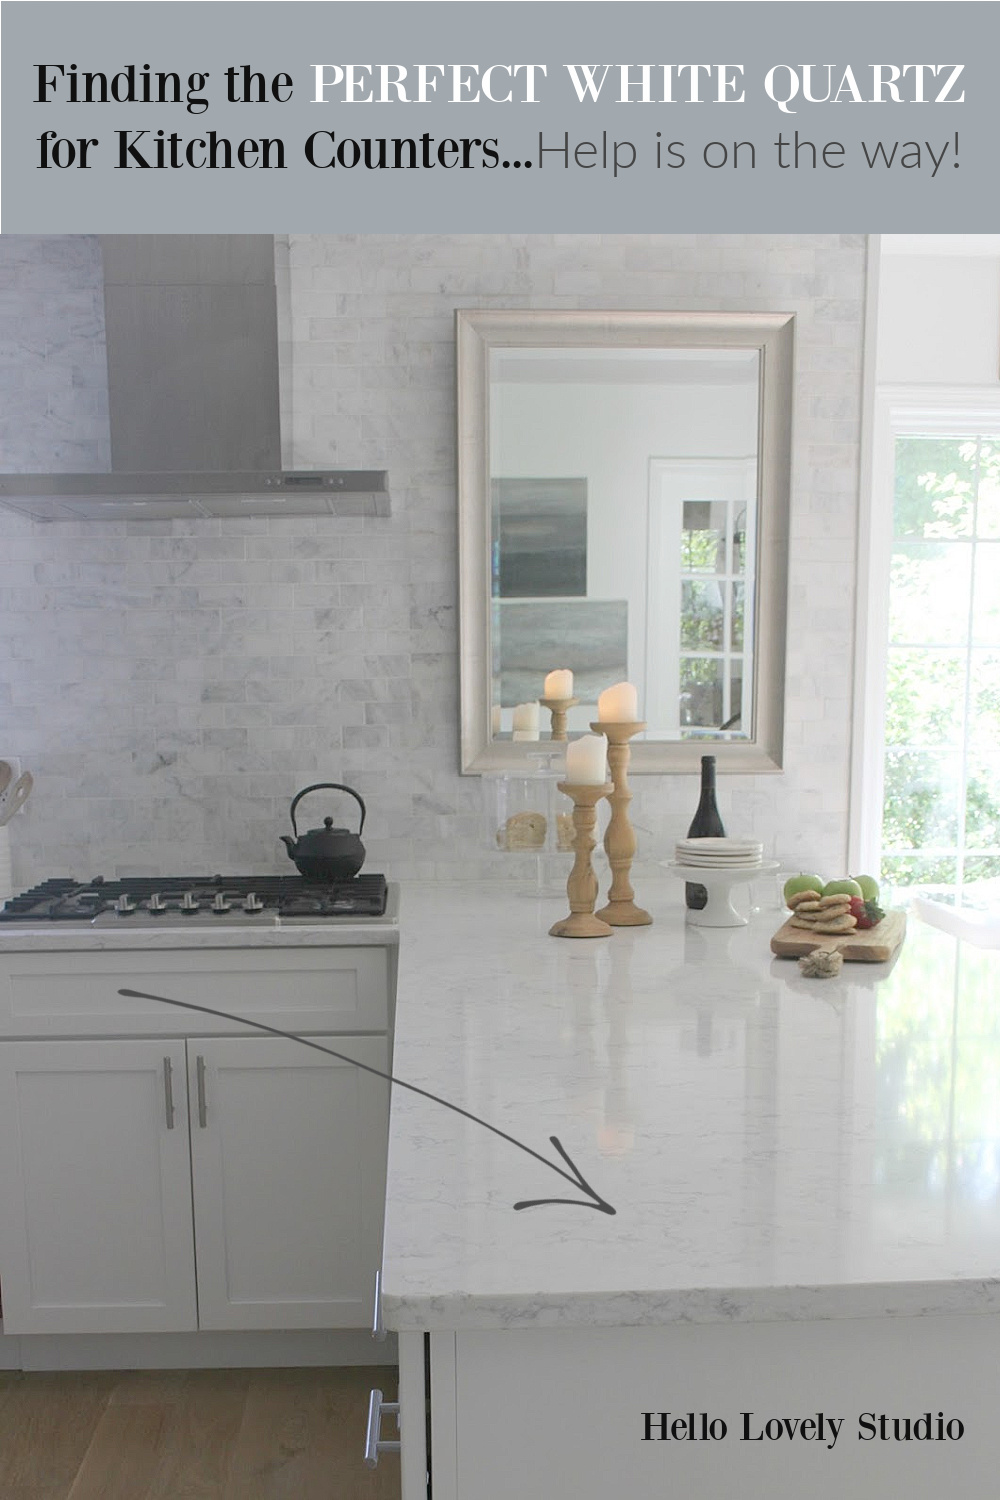 Finding the perfect white quartz for kitchen counters just got a whole lot easier with help from Hello Lovely Studio. #whitequartz #quartzcounters #kitchendesign